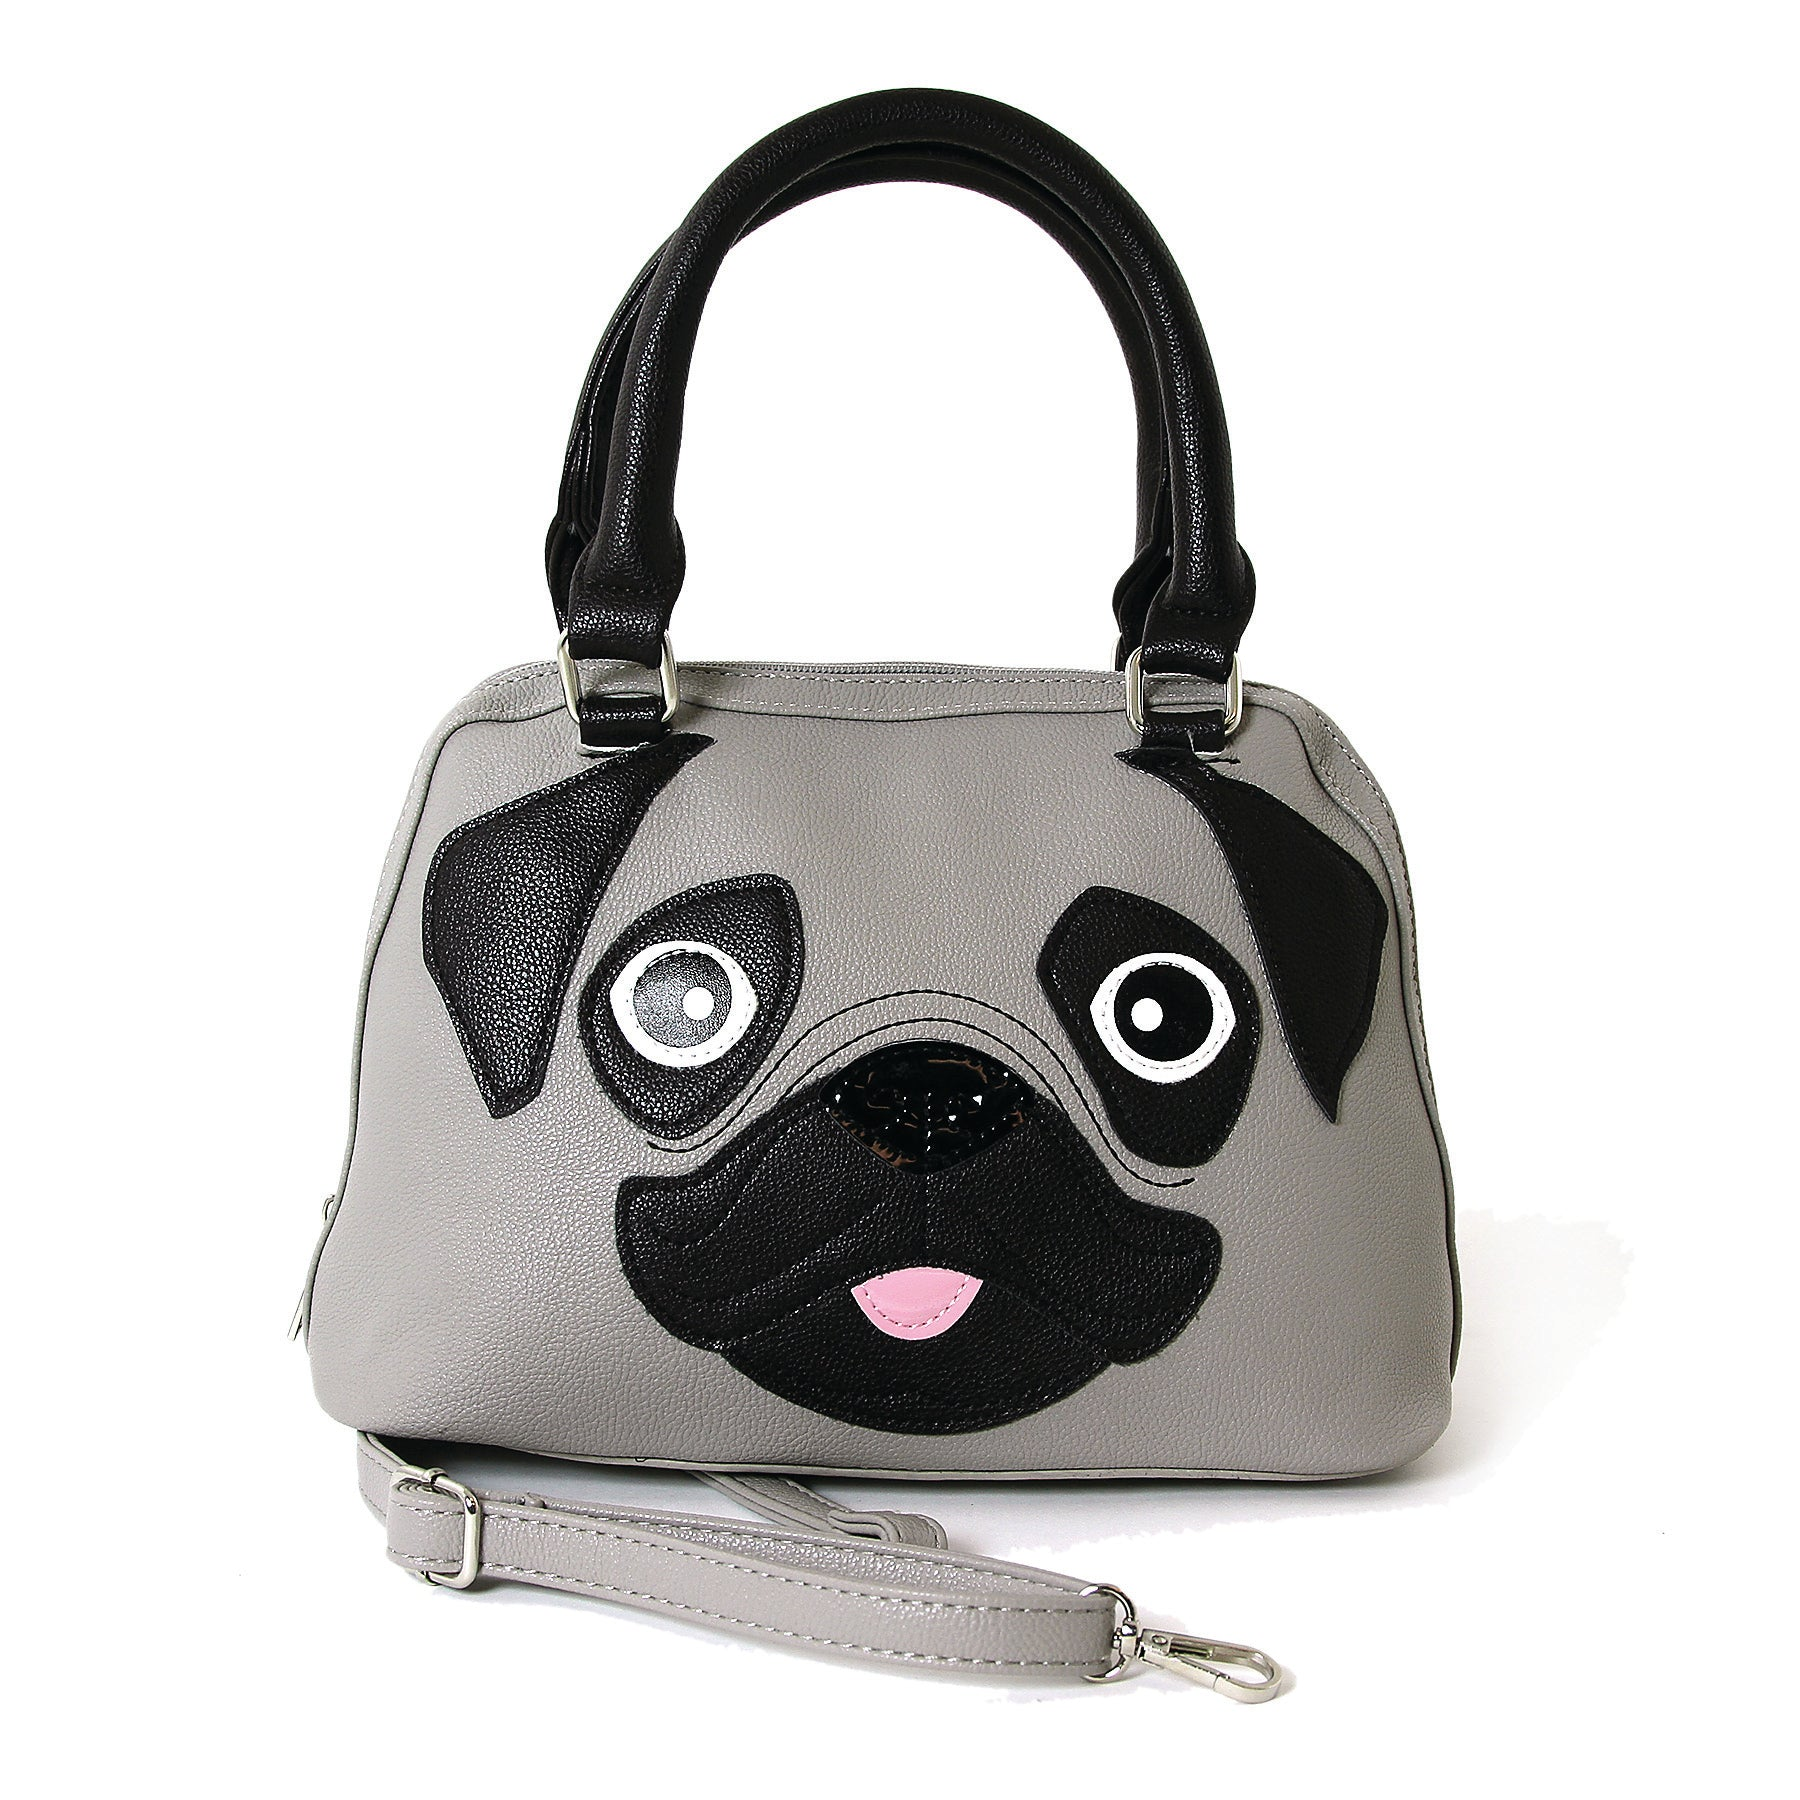 Cute Little Pug Puppy Satchel Handbag in Vinyl Material front view